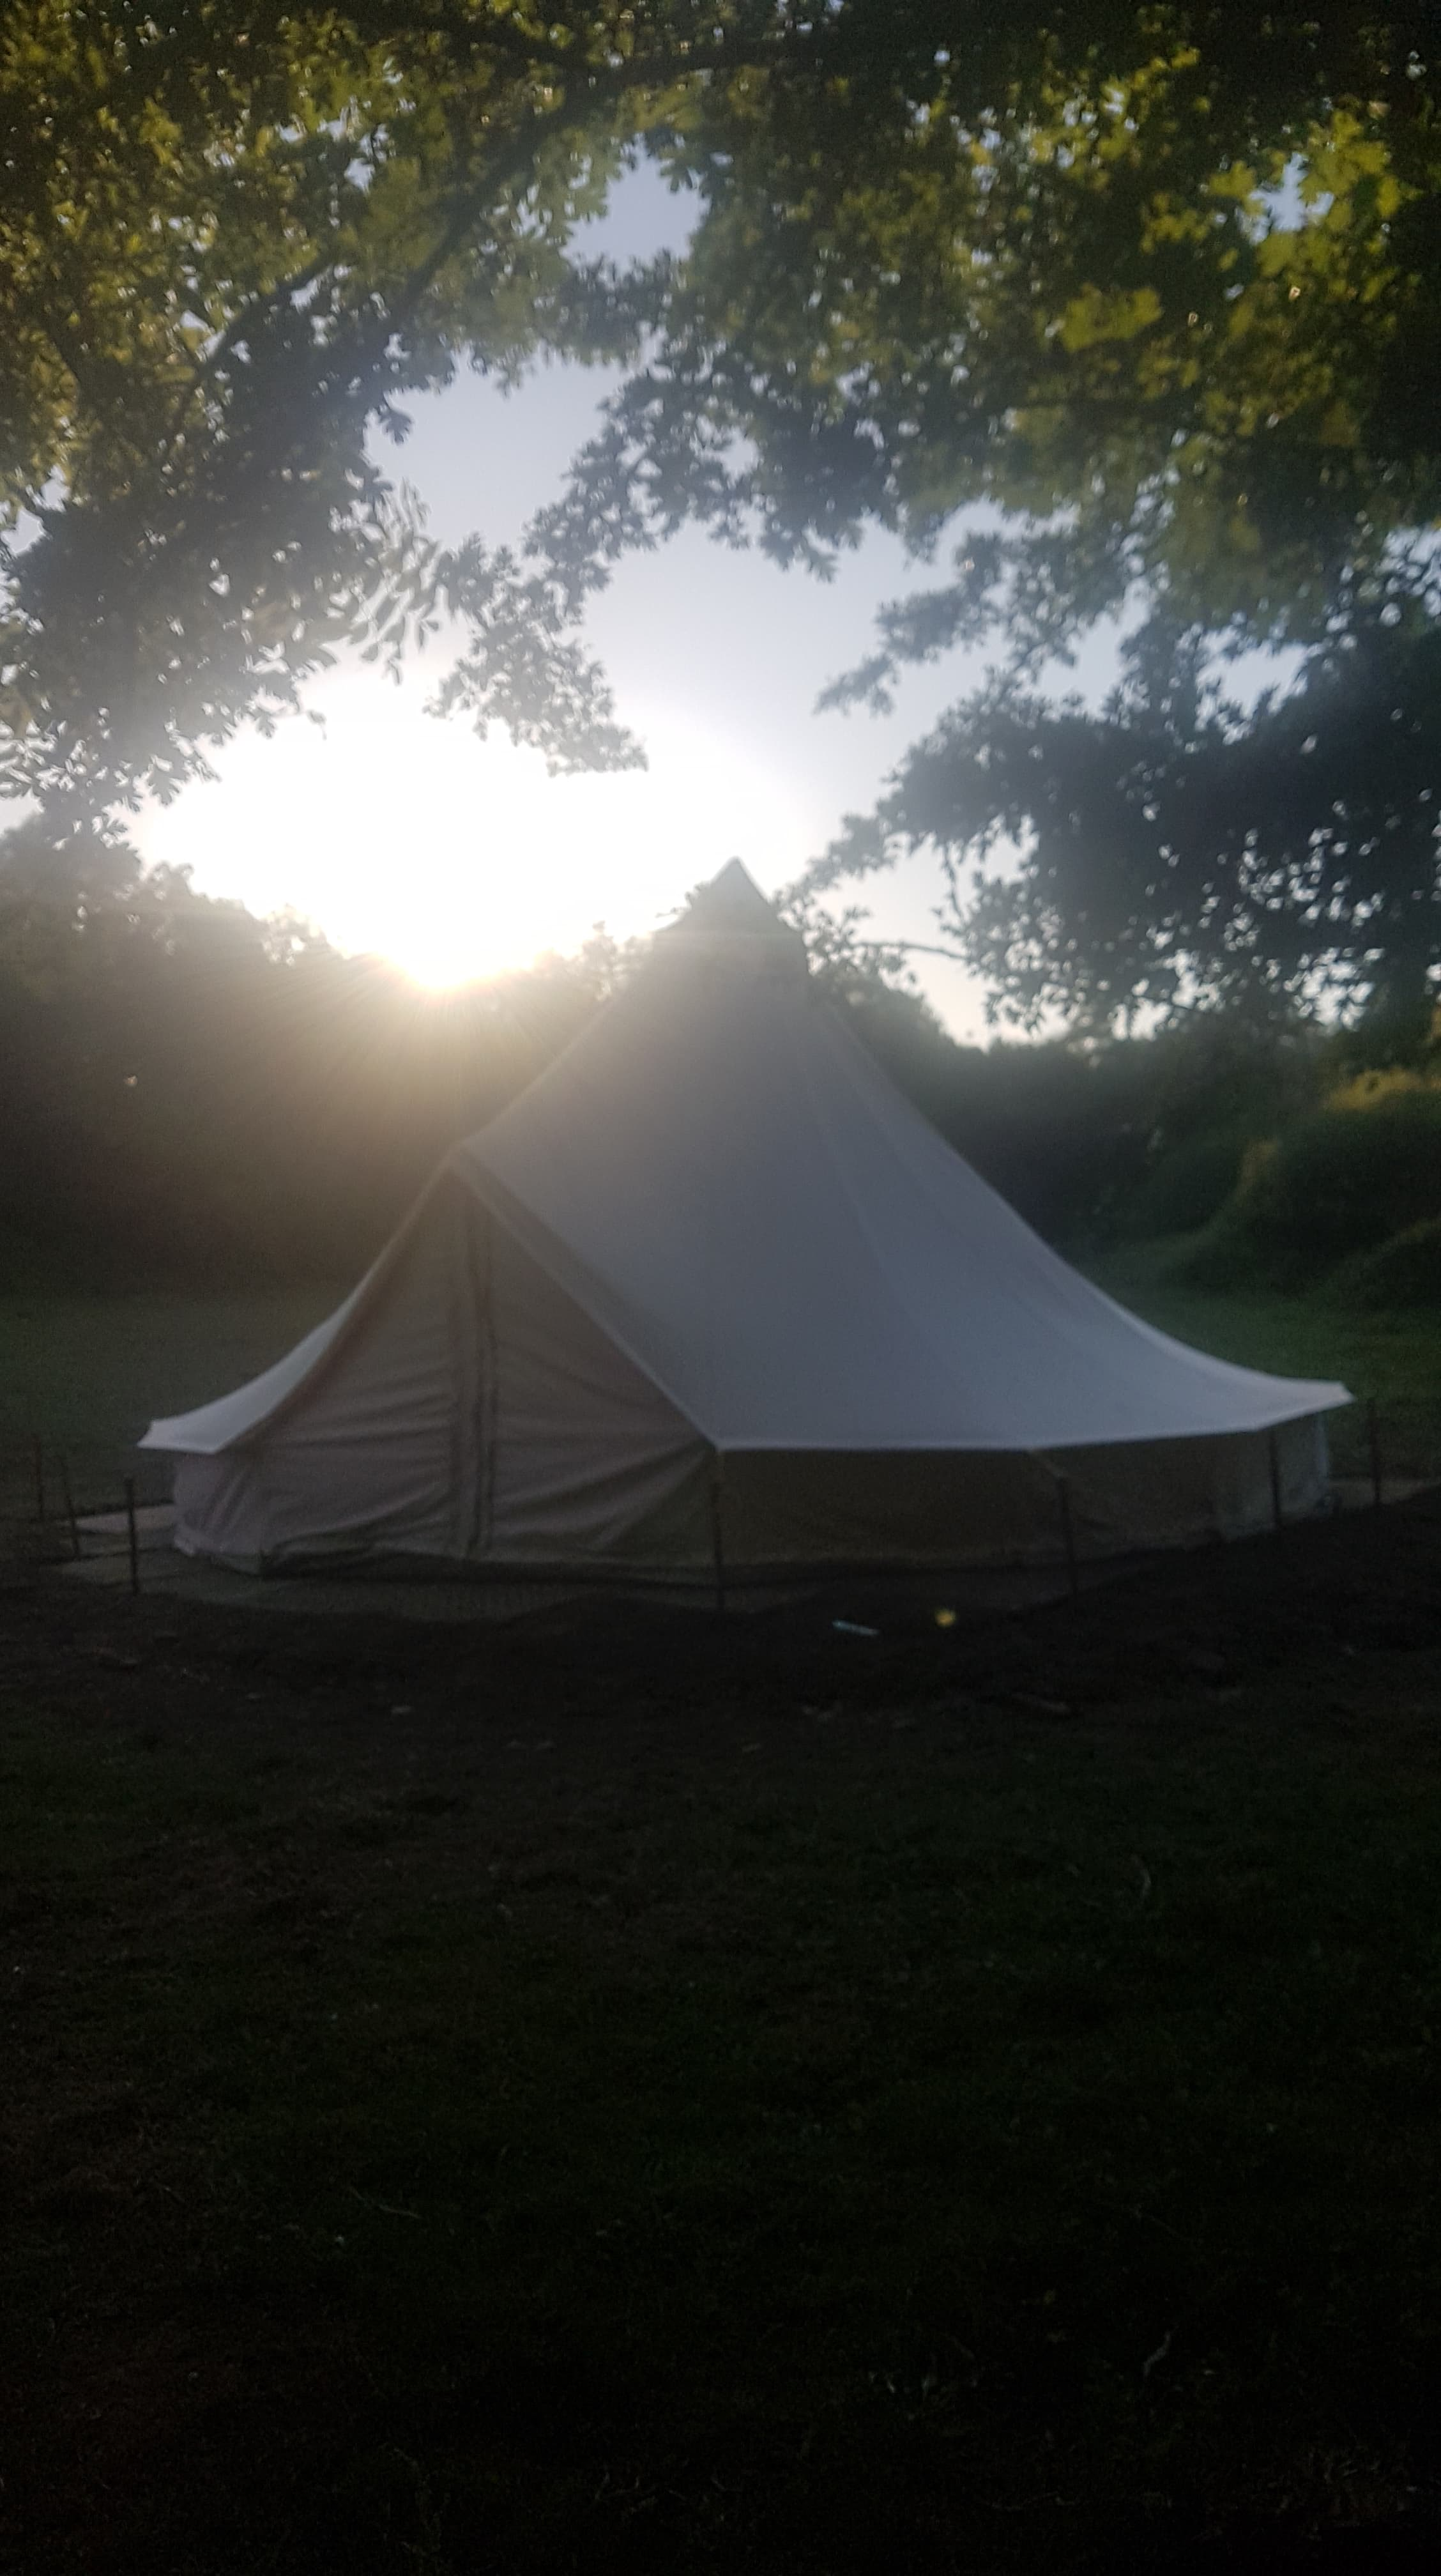 6m round tent that would be perfect for a romantic few nights away for a couple of an adventure for the Family.